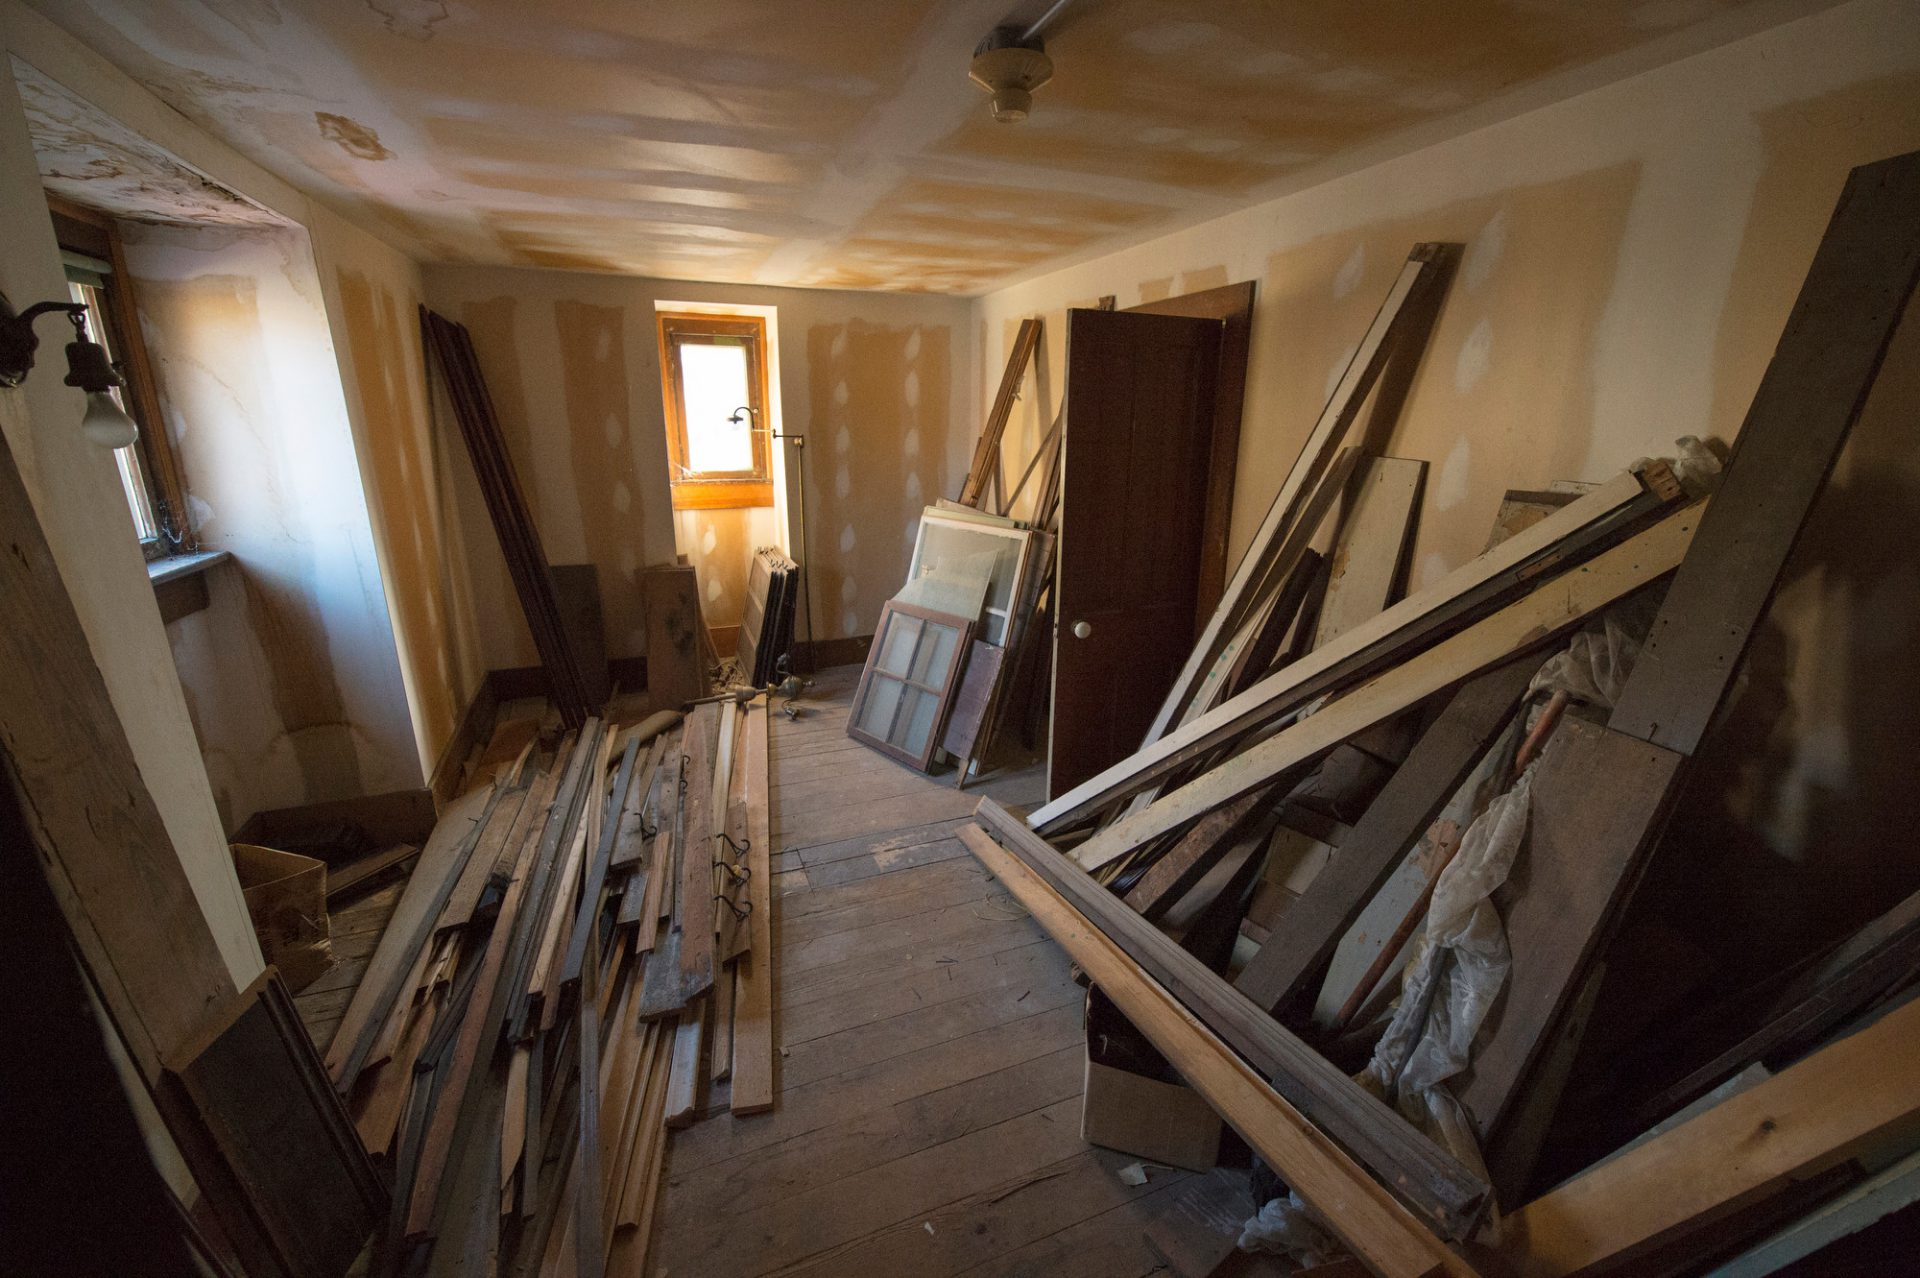 Photo: The fourth oldest home in Lincoln Nebraska begins to be restored.